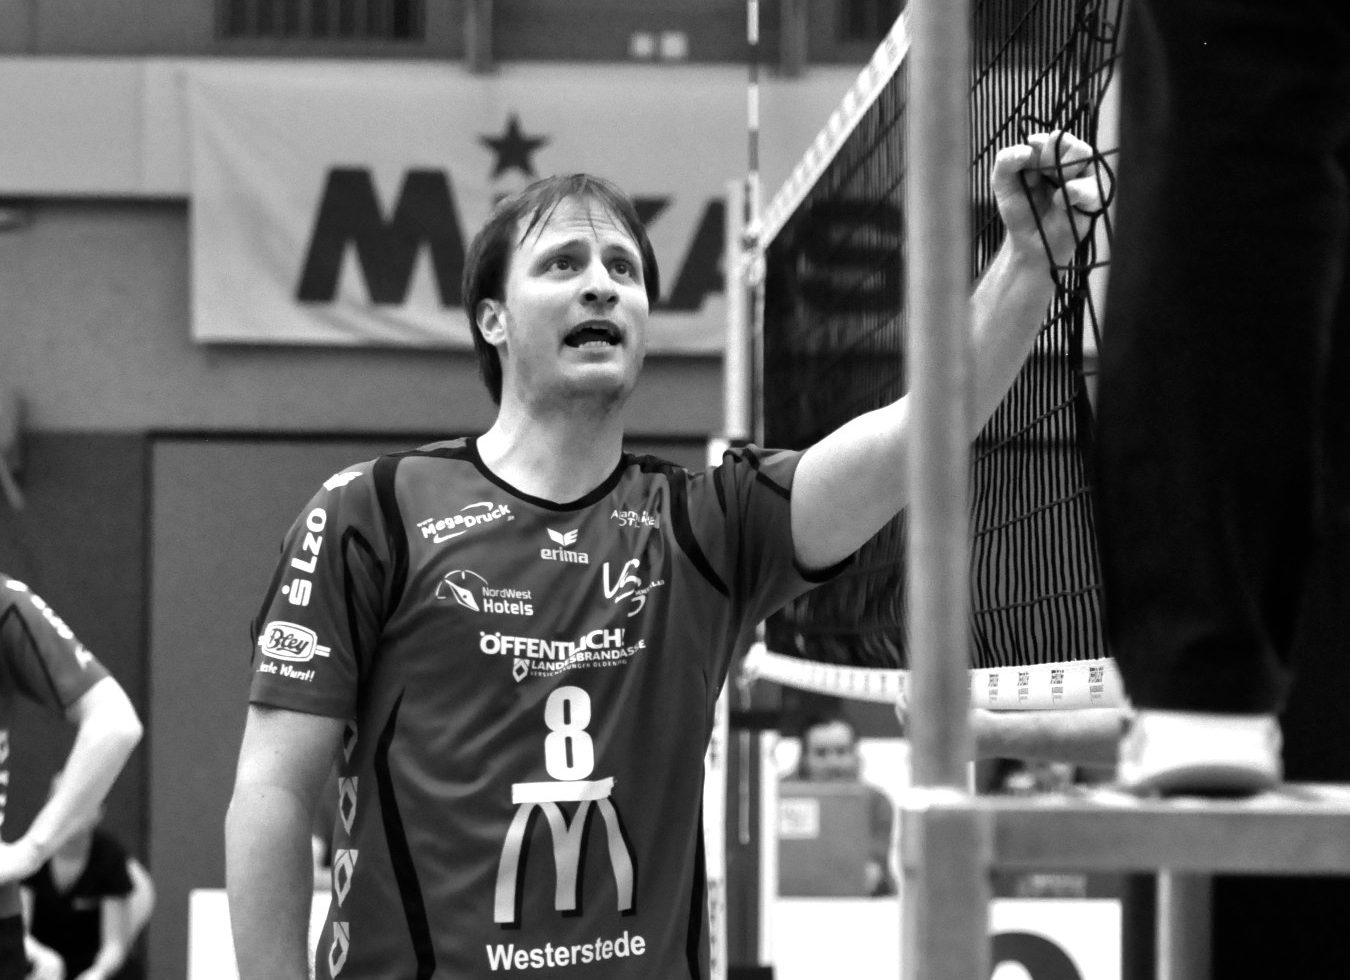 Volleyball VSG Ammerland 18.03.2012